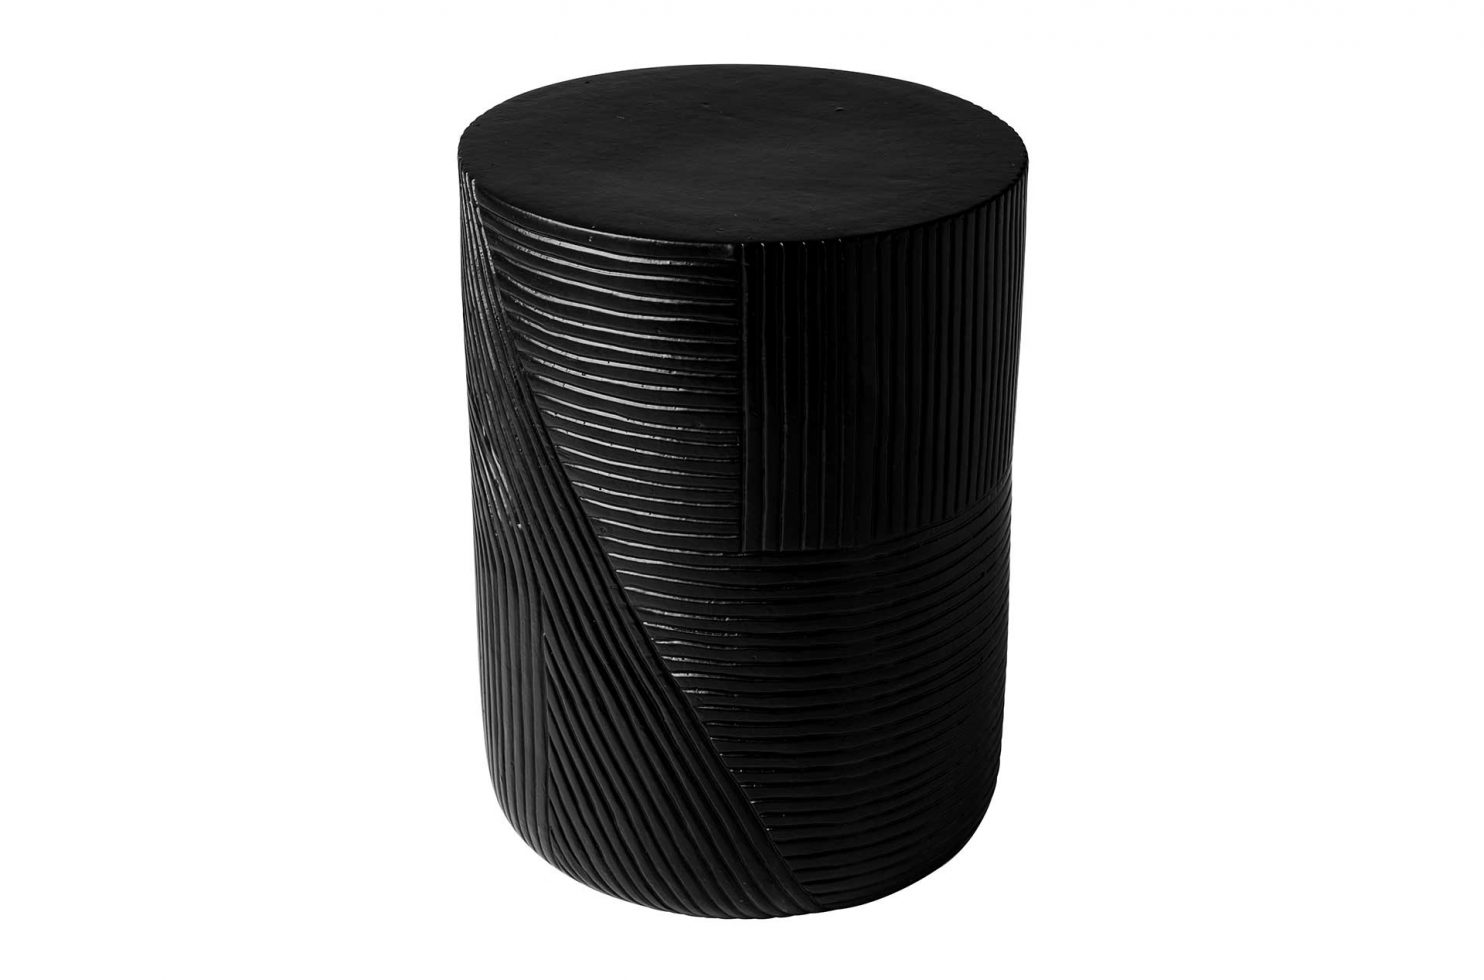 prov cer serenity textured side table 16in C30802032 coal 1 main4 web